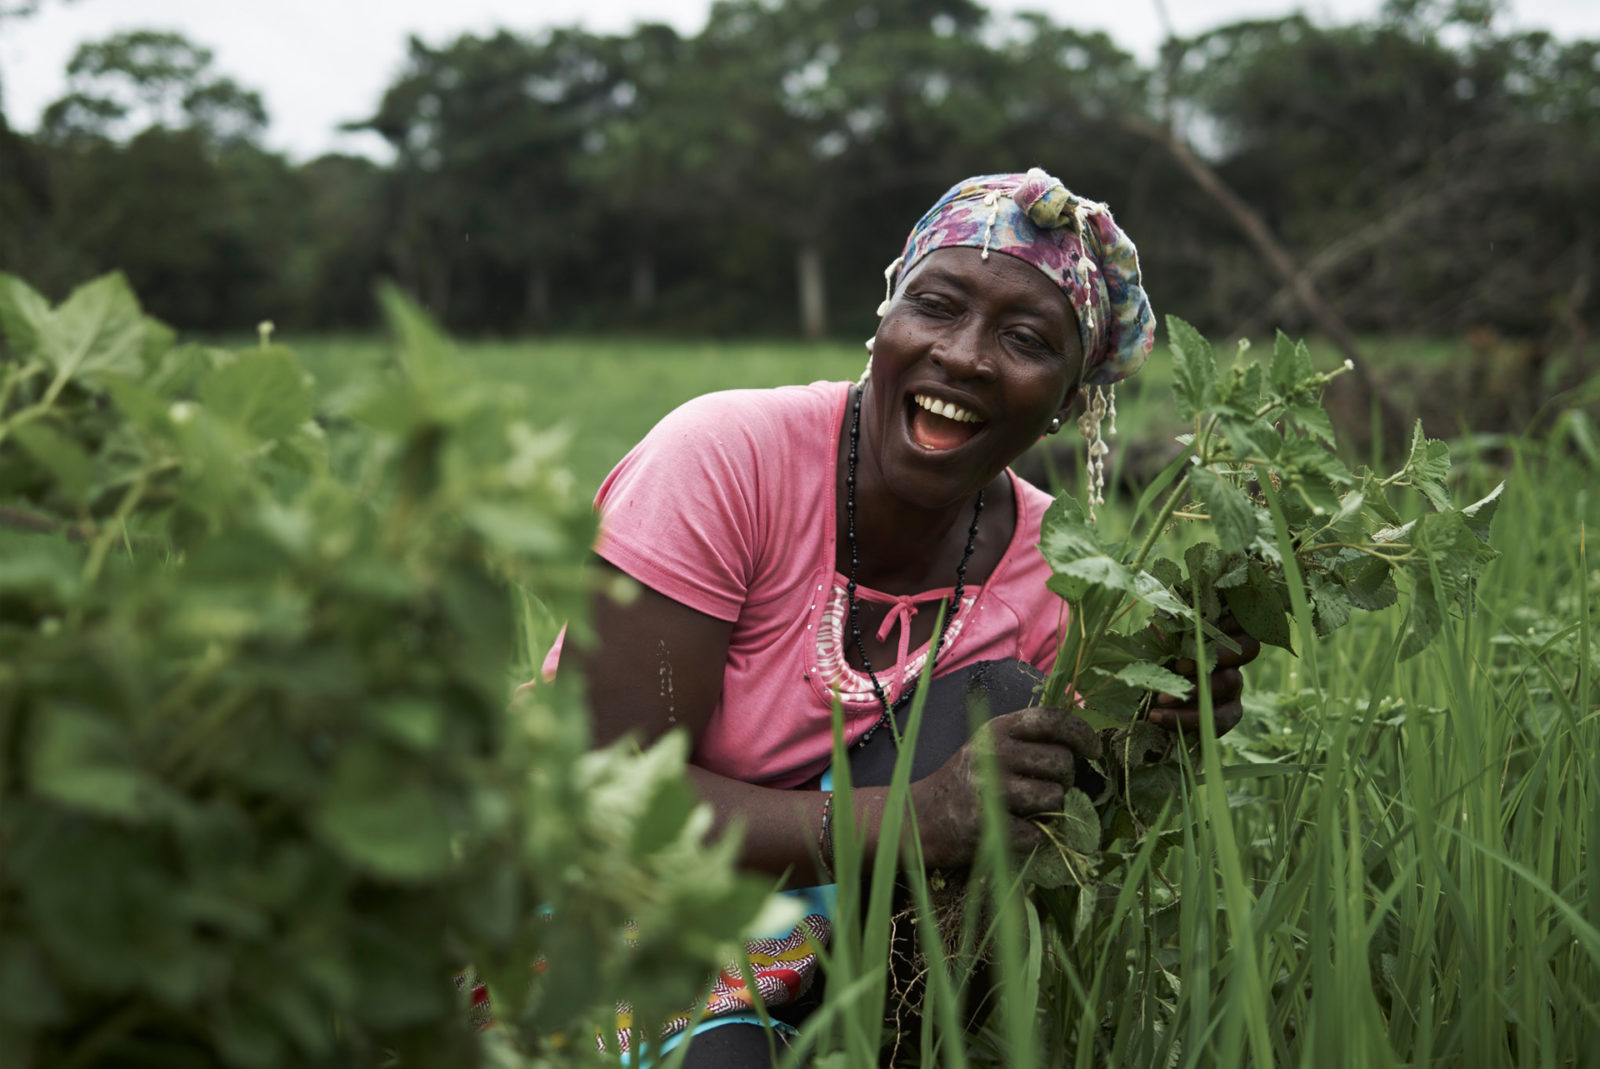 Tombohuaun female villager picking crops in a field smiling